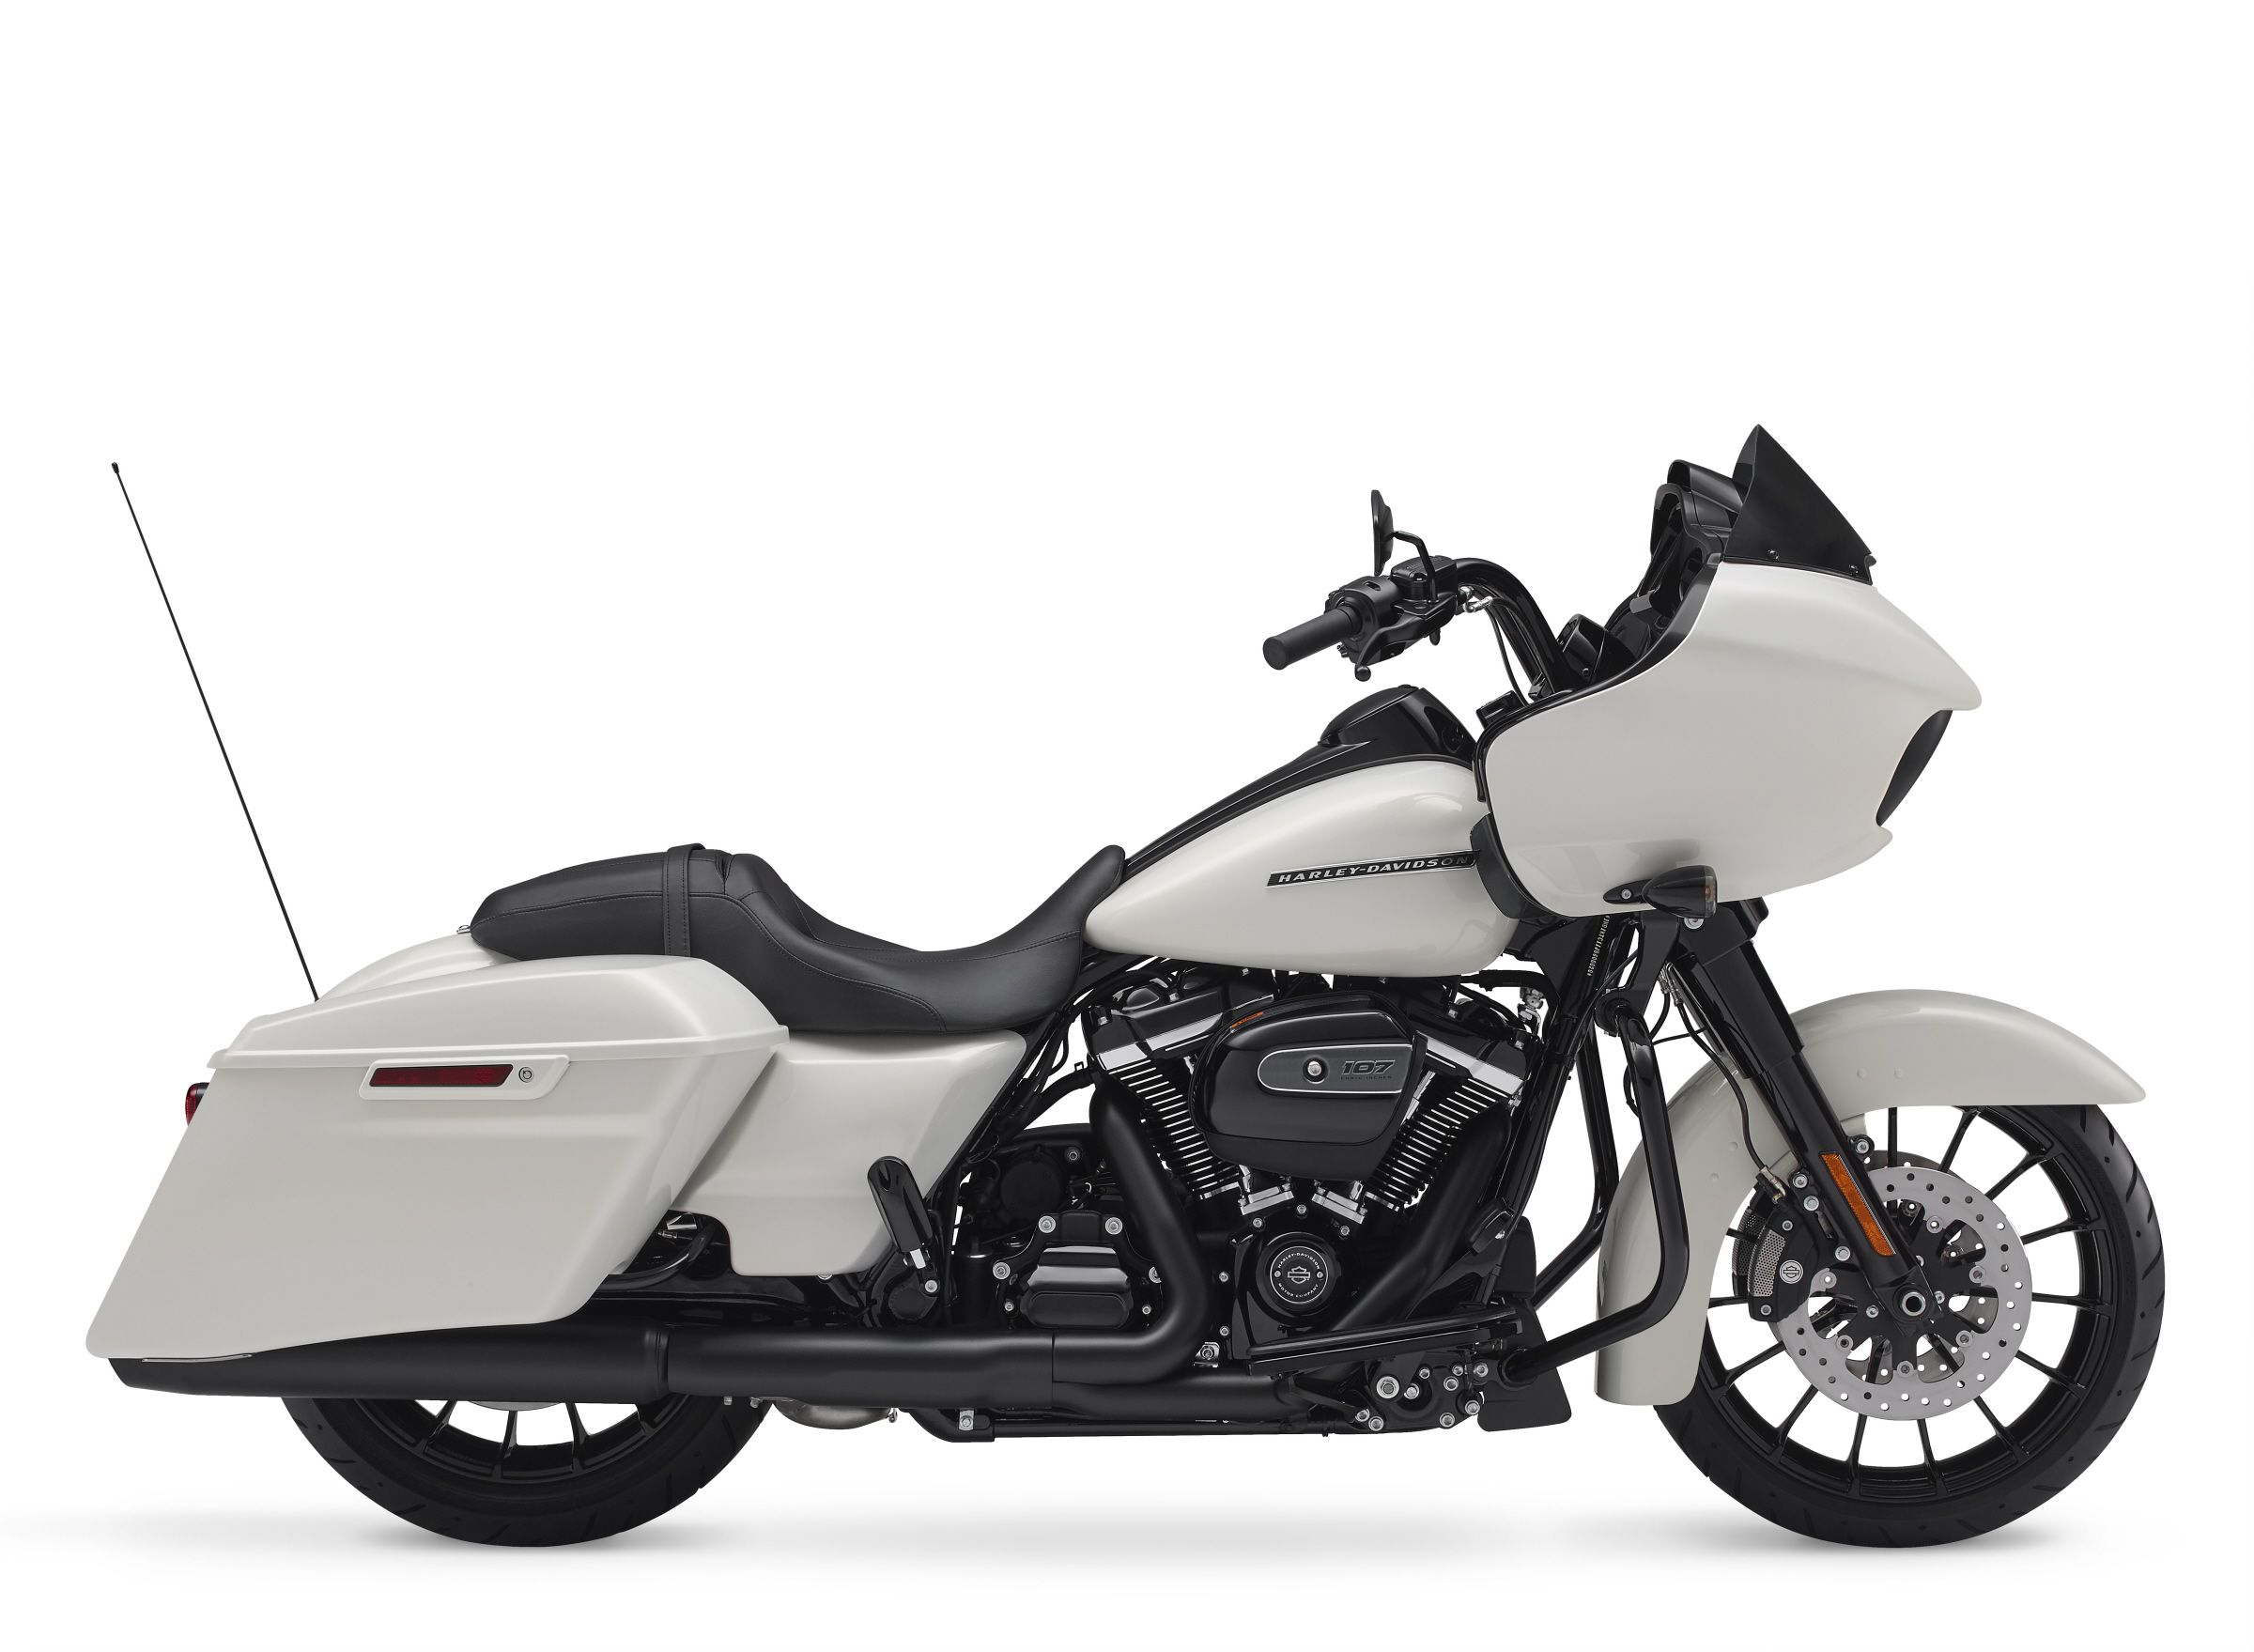 2018 Harley-Davidson Touring and CVO First Look   Motorcyclist